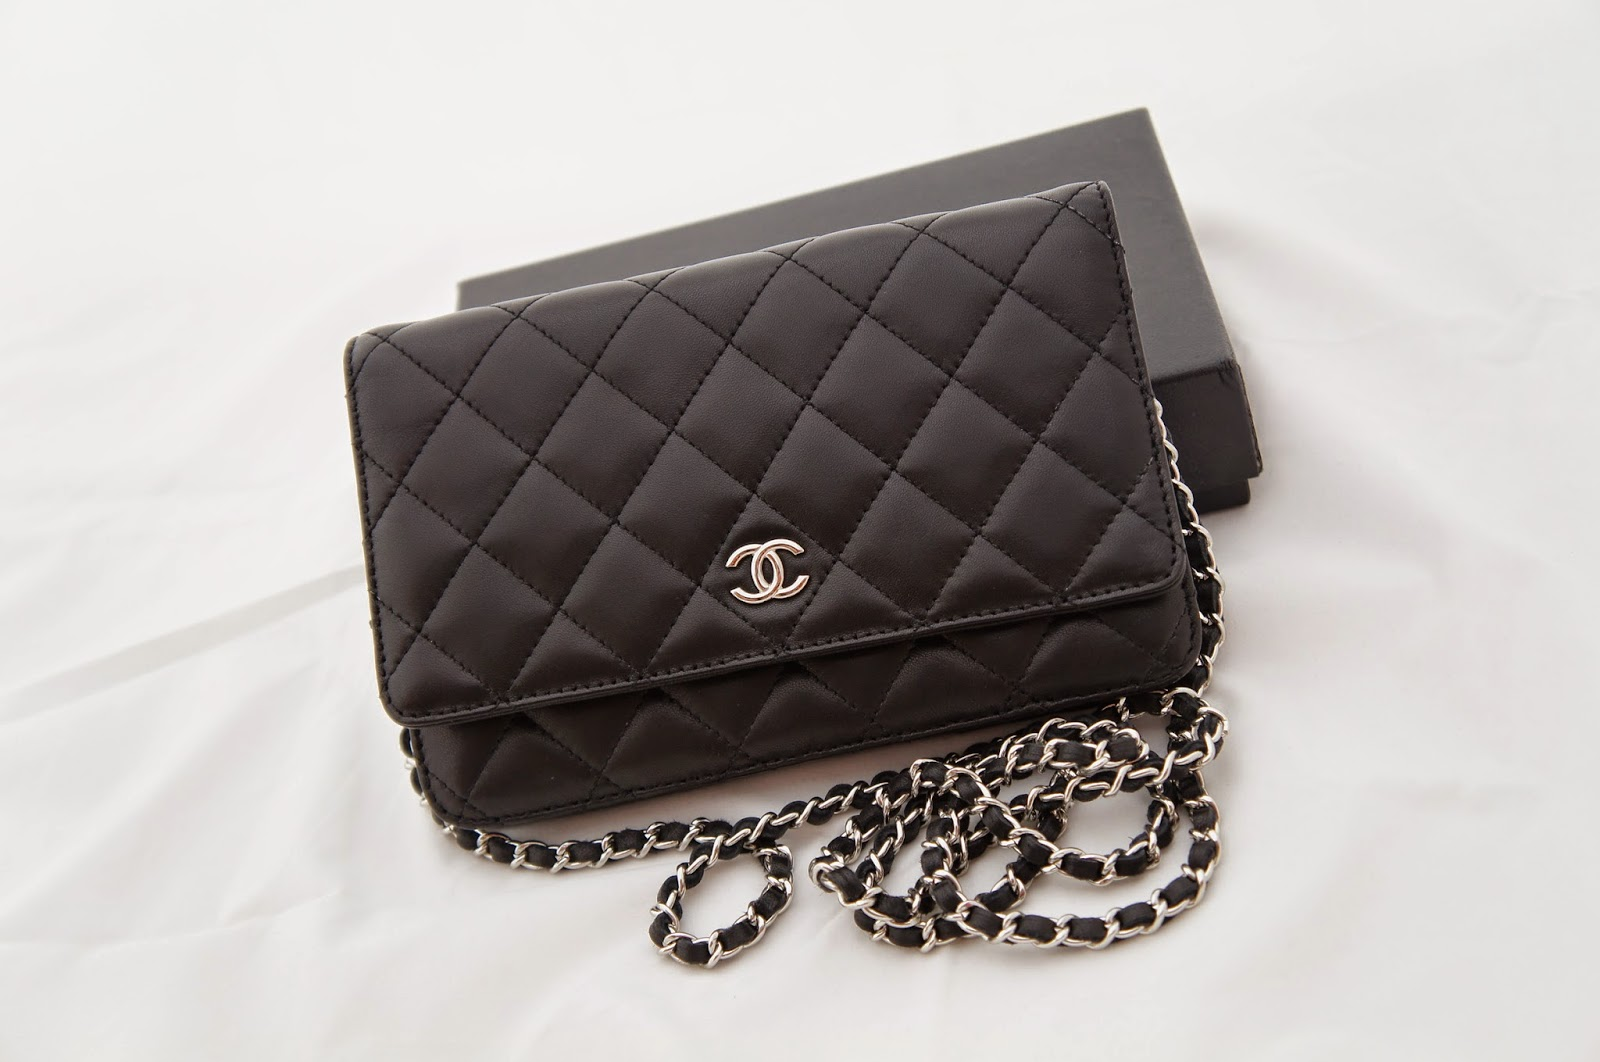 Pre-owned - Wallet on Chain leather bag Chanel 0SNtrjA